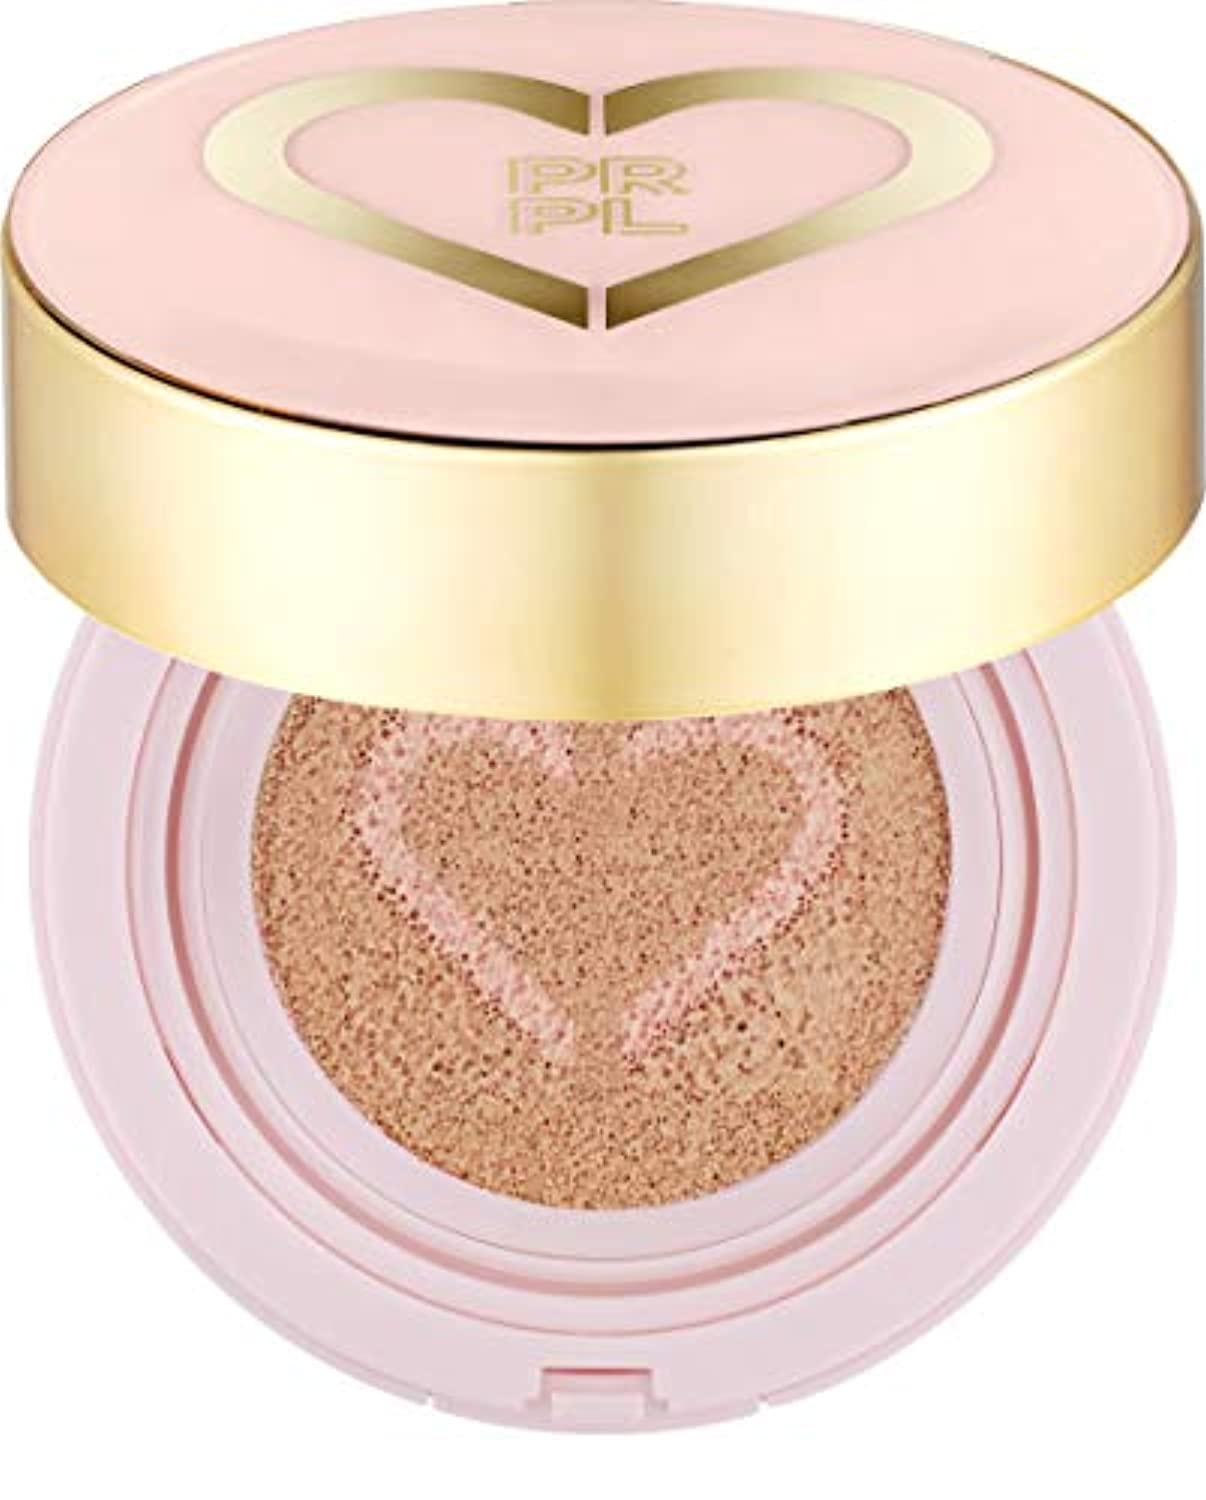 PRPL Heart Face Cushion - cover and glow cushion foundation, Korean make-up and skincare cosmetics (#21 Pure Ivory)